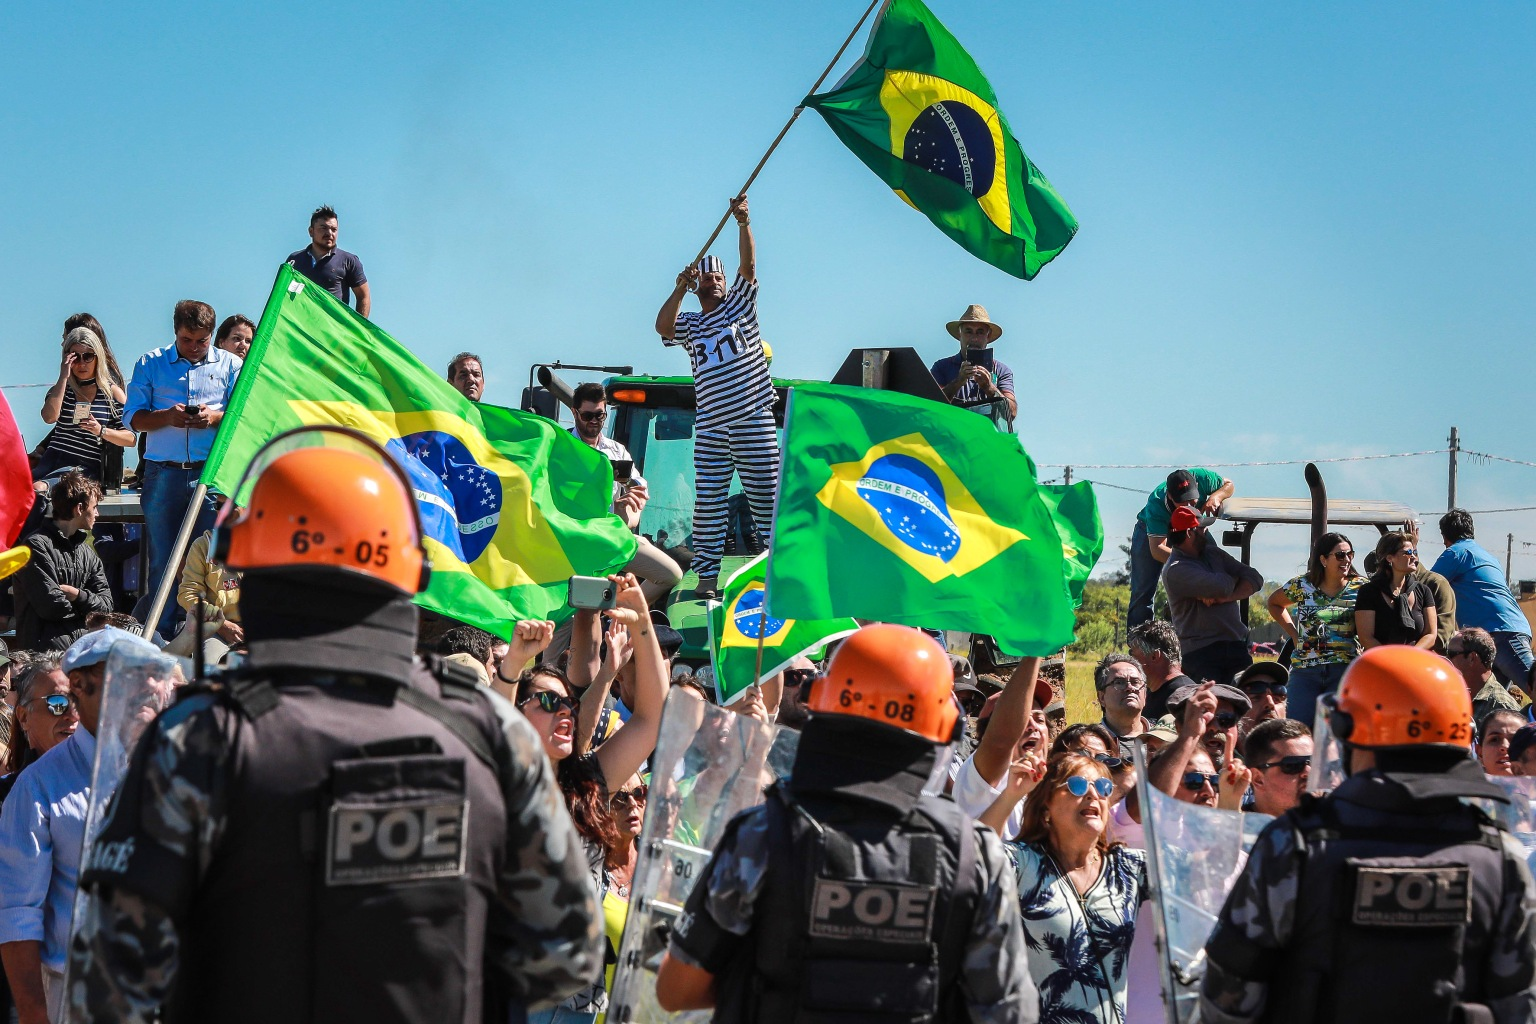 TOPSHOT - Riot police stand guard between opponents of former Brazilian President (2003-2010) Luiz Inacio Lula da Silva and a group of supporters (out of frame), in Bage, south of Brazil, where Lula arrived for a political gathering on March 19, 2018, just days before a court decision that could lead him to jail for corruption. Lula was convicted in 2017 and sentenced to nine and a half years in prison for accepting a luxury apartment from a construction company involved in a wide-ranging corruption probe that uncovered a web of kickbacks, bribes and slush funds involving high-level politicians from almost every party and throughout the business world. His lawyers appealed, but the conviction was upheld unanimously in January 2018 by a regional federal court in Porto Alegre, which increased the prison term to 12 years and one month. / AFP PHOTO / Itamar AGUIAR        (Photo credit should read ITAMAR AGUIAR/AFP/Getty Images)